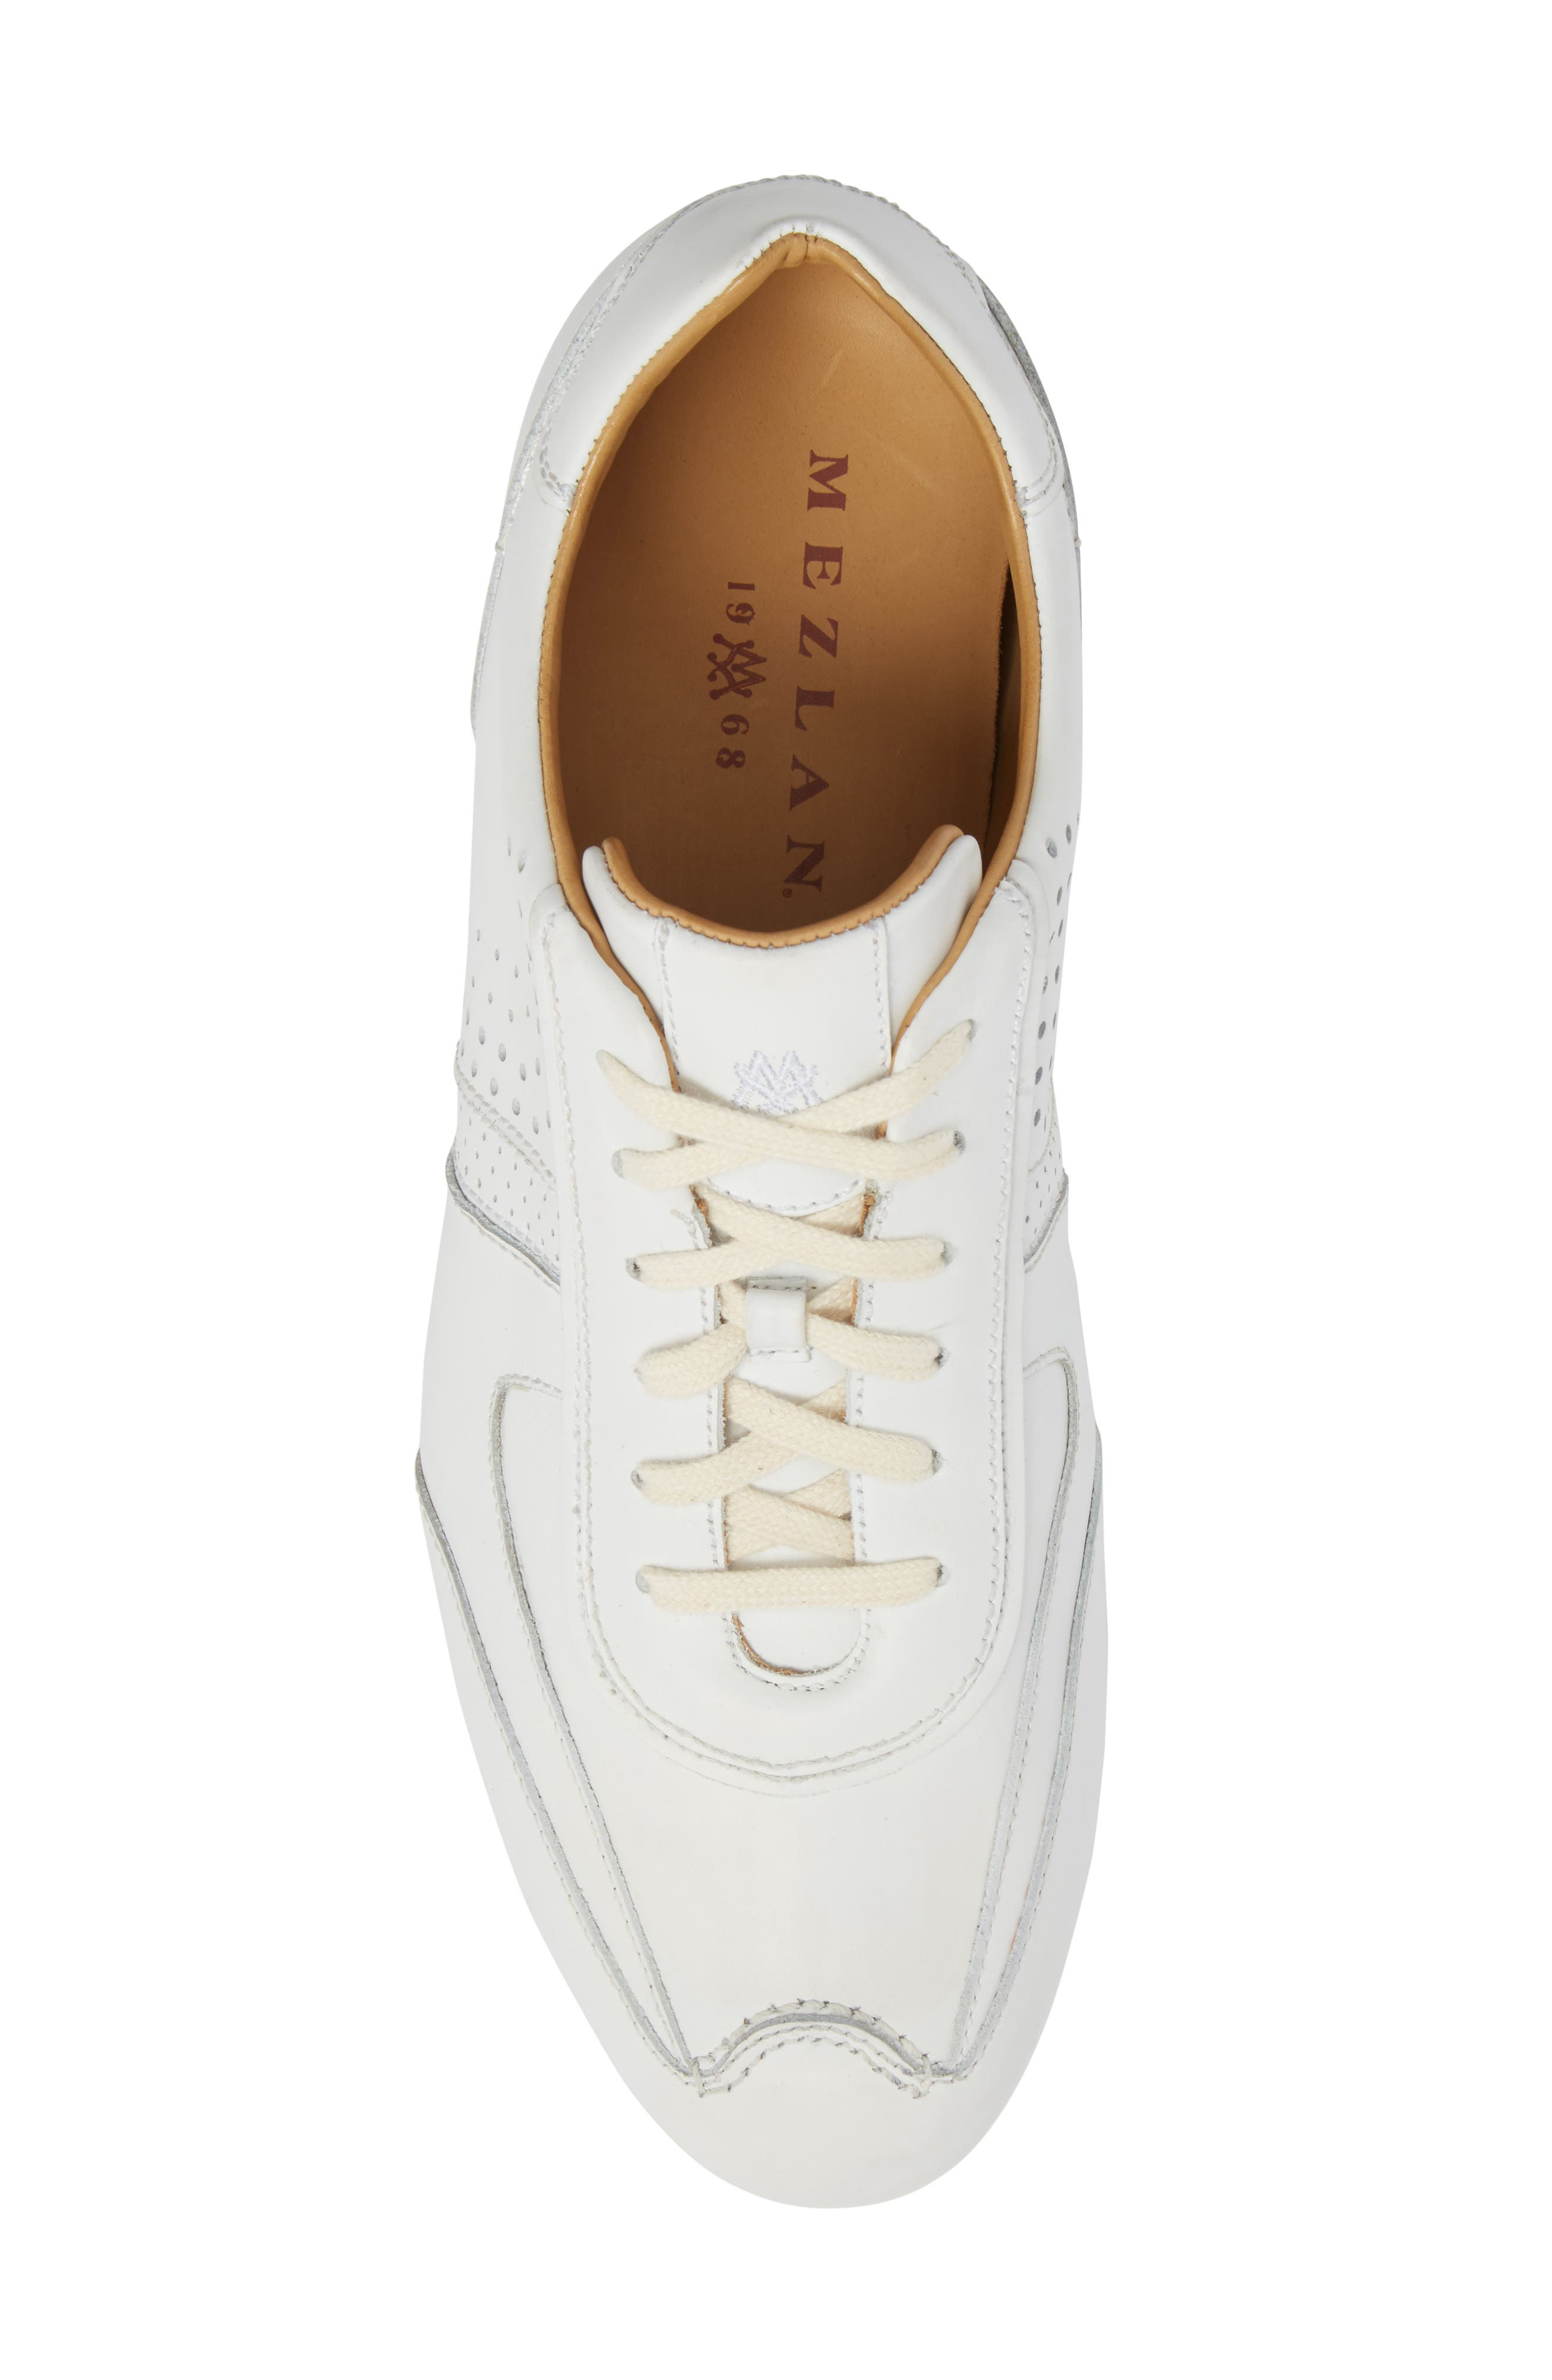 Lozano II Low Top Sneaker,                             Alternate thumbnail 5, color,                             White Leather